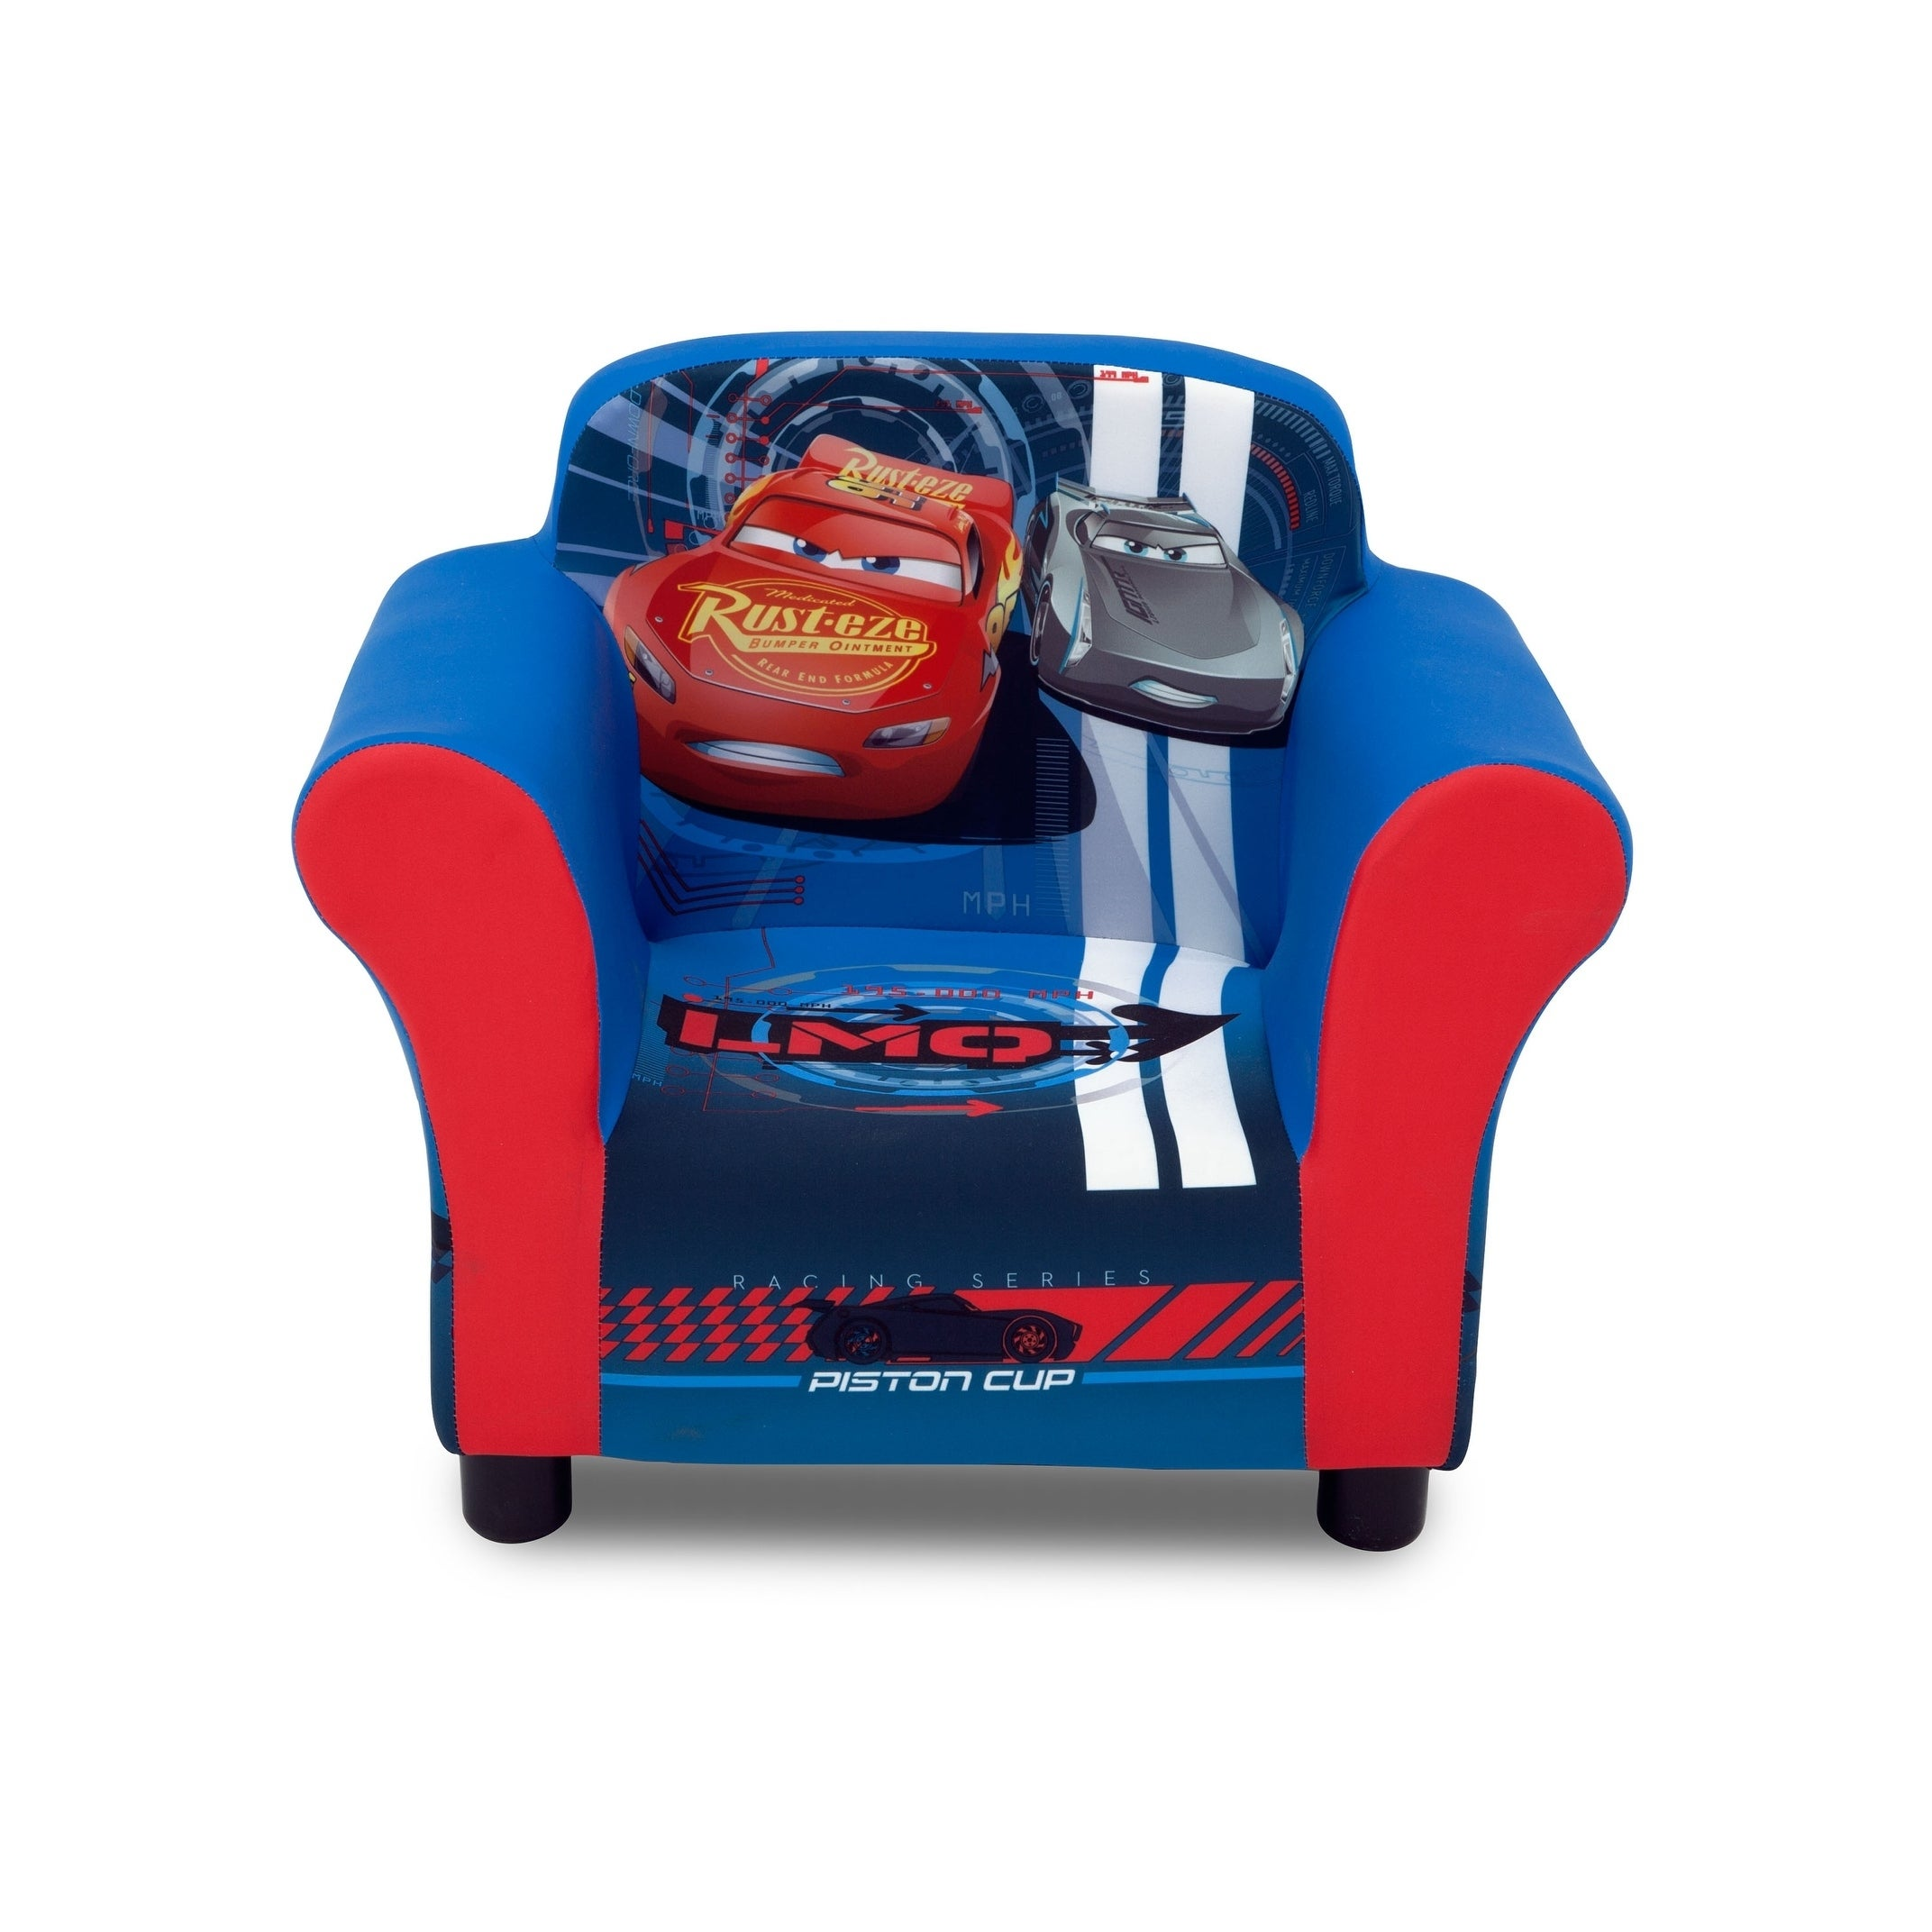 chair boston left view upholstred red products redsox kids upholstered delta sox children